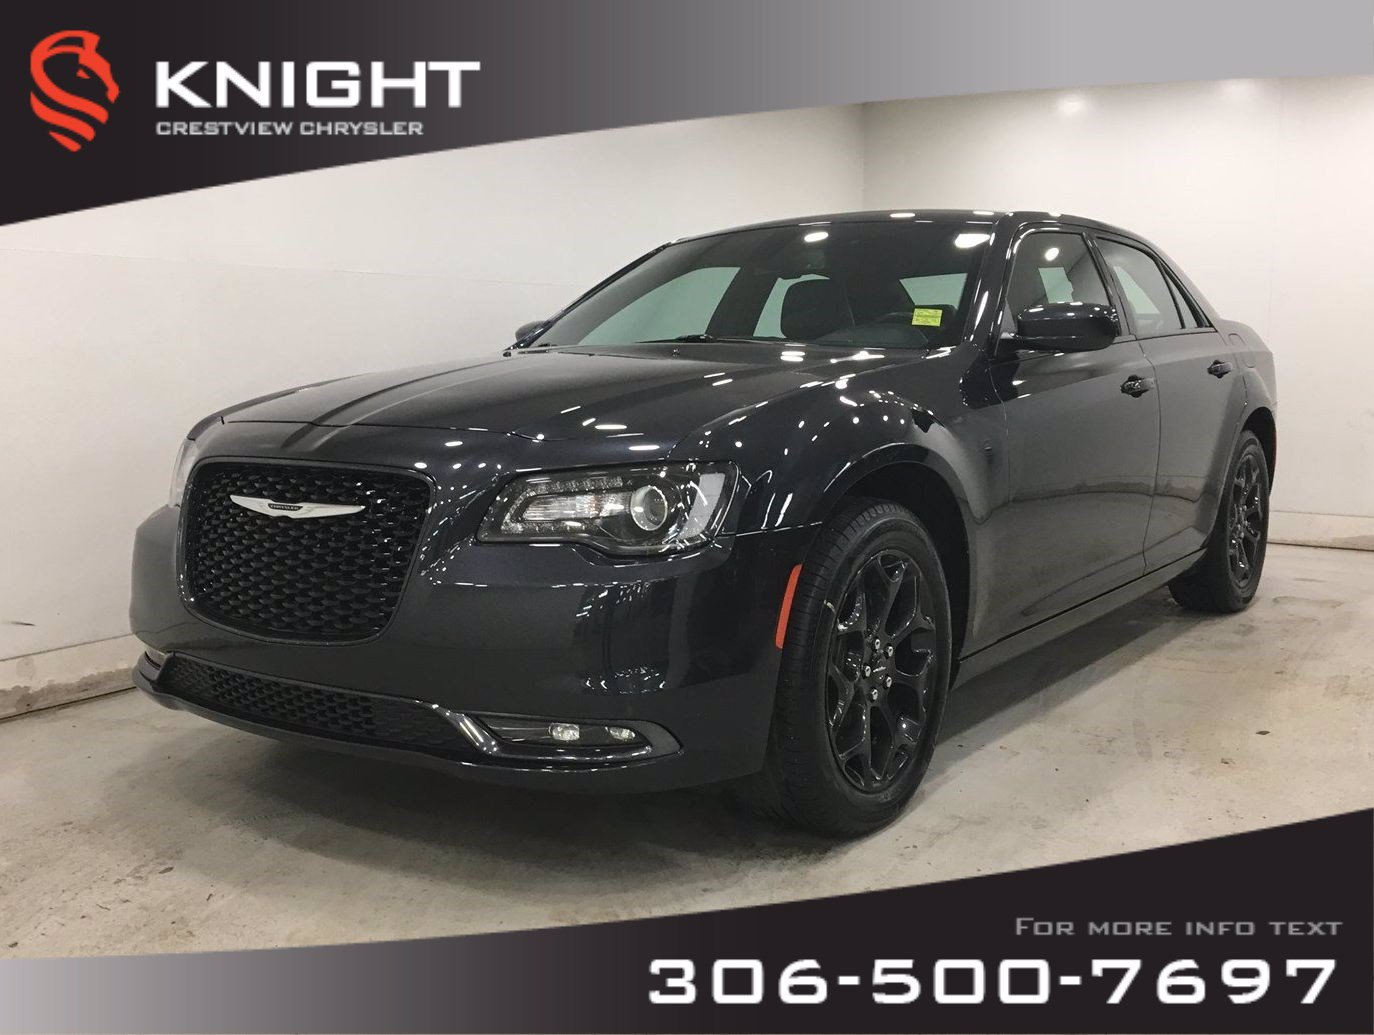 Certified Pre-Owned 2019 Chrysler 300 S AWD | Leather